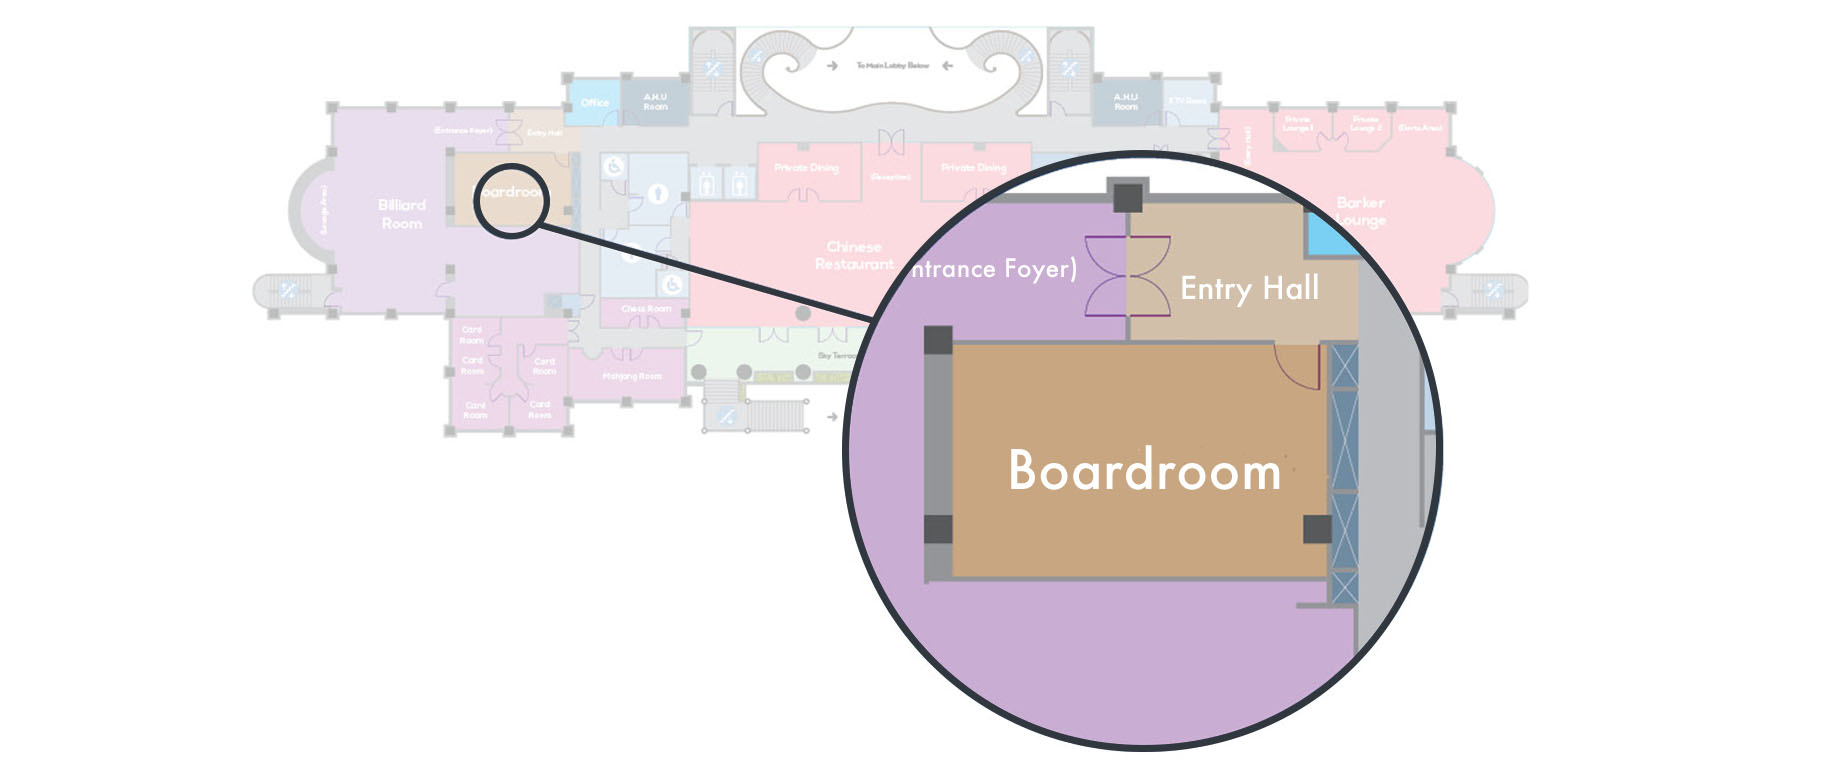 Boardroom Floor Plan